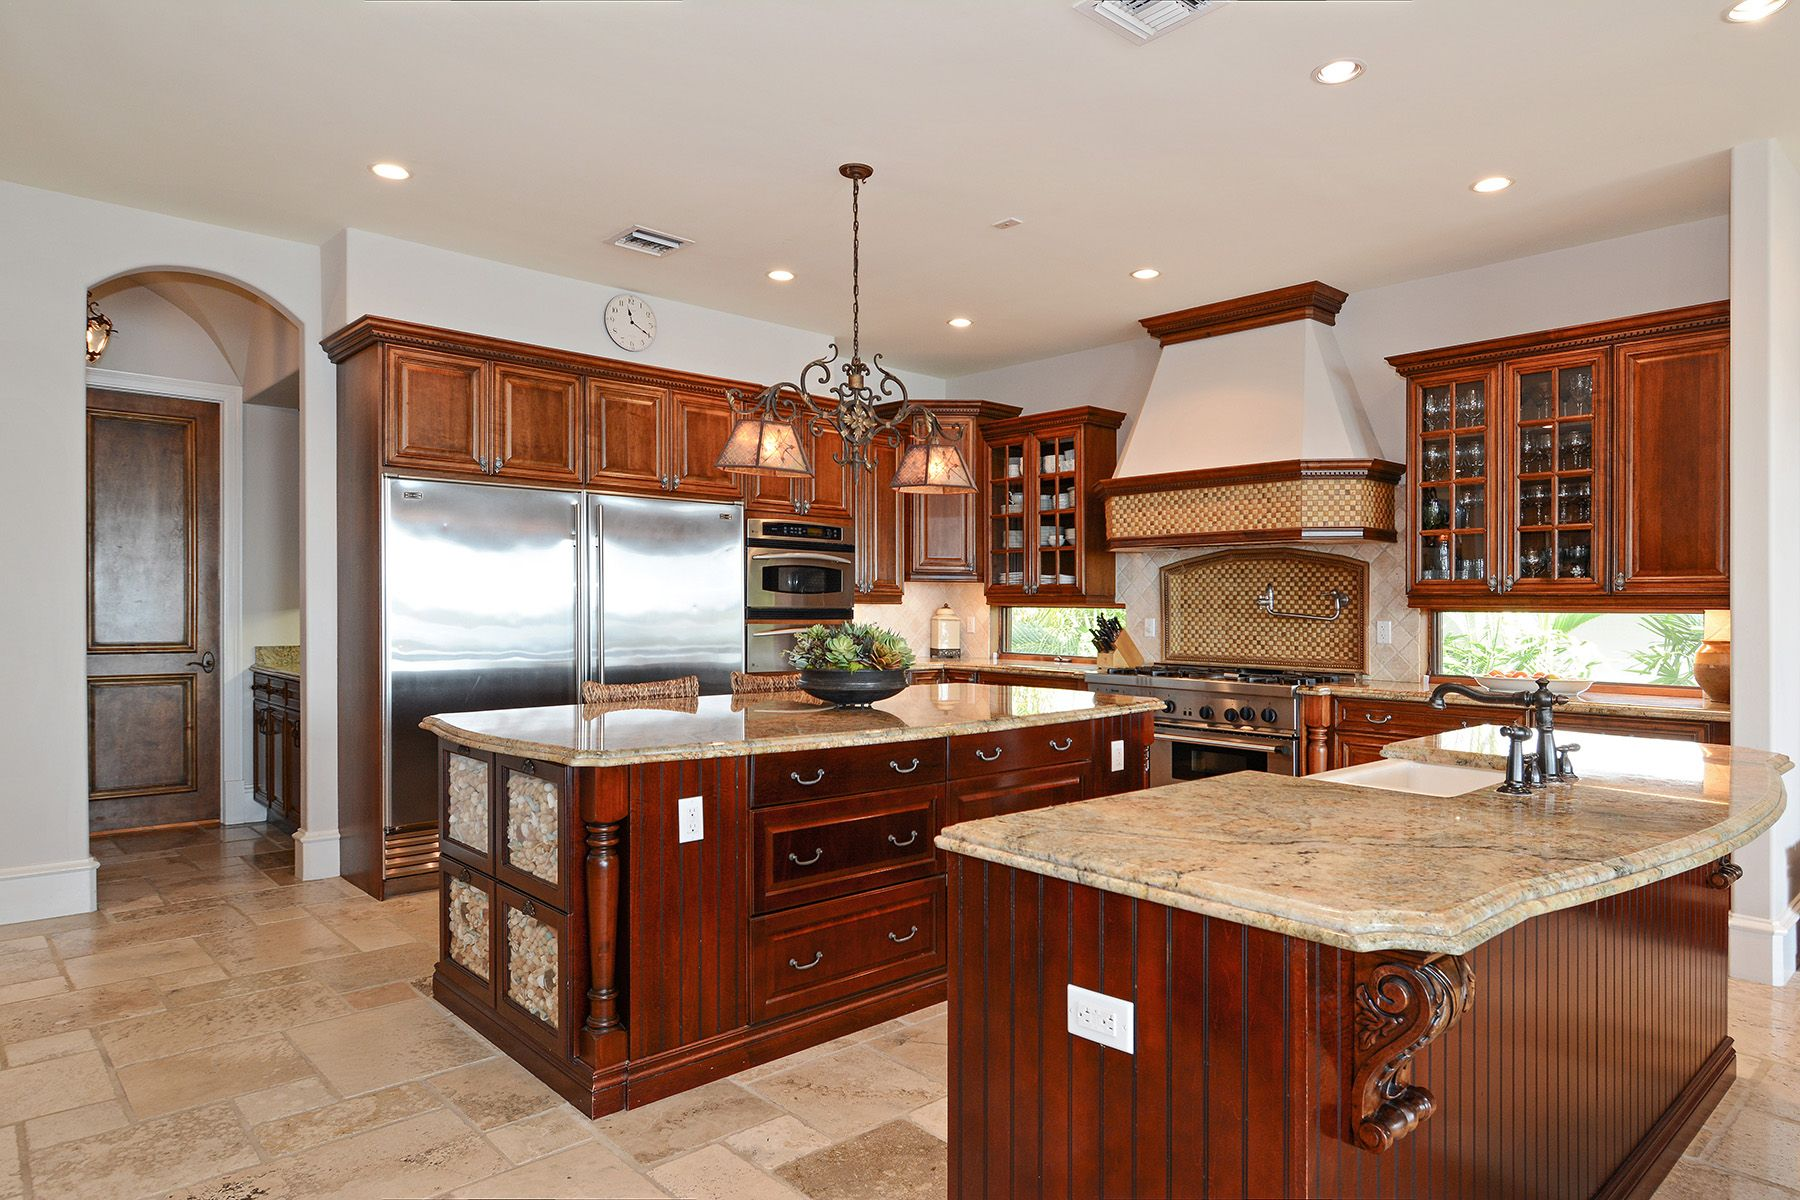 03_7321BelleMeadeIslandDrive_5_Kitchen_HiRes.jpg